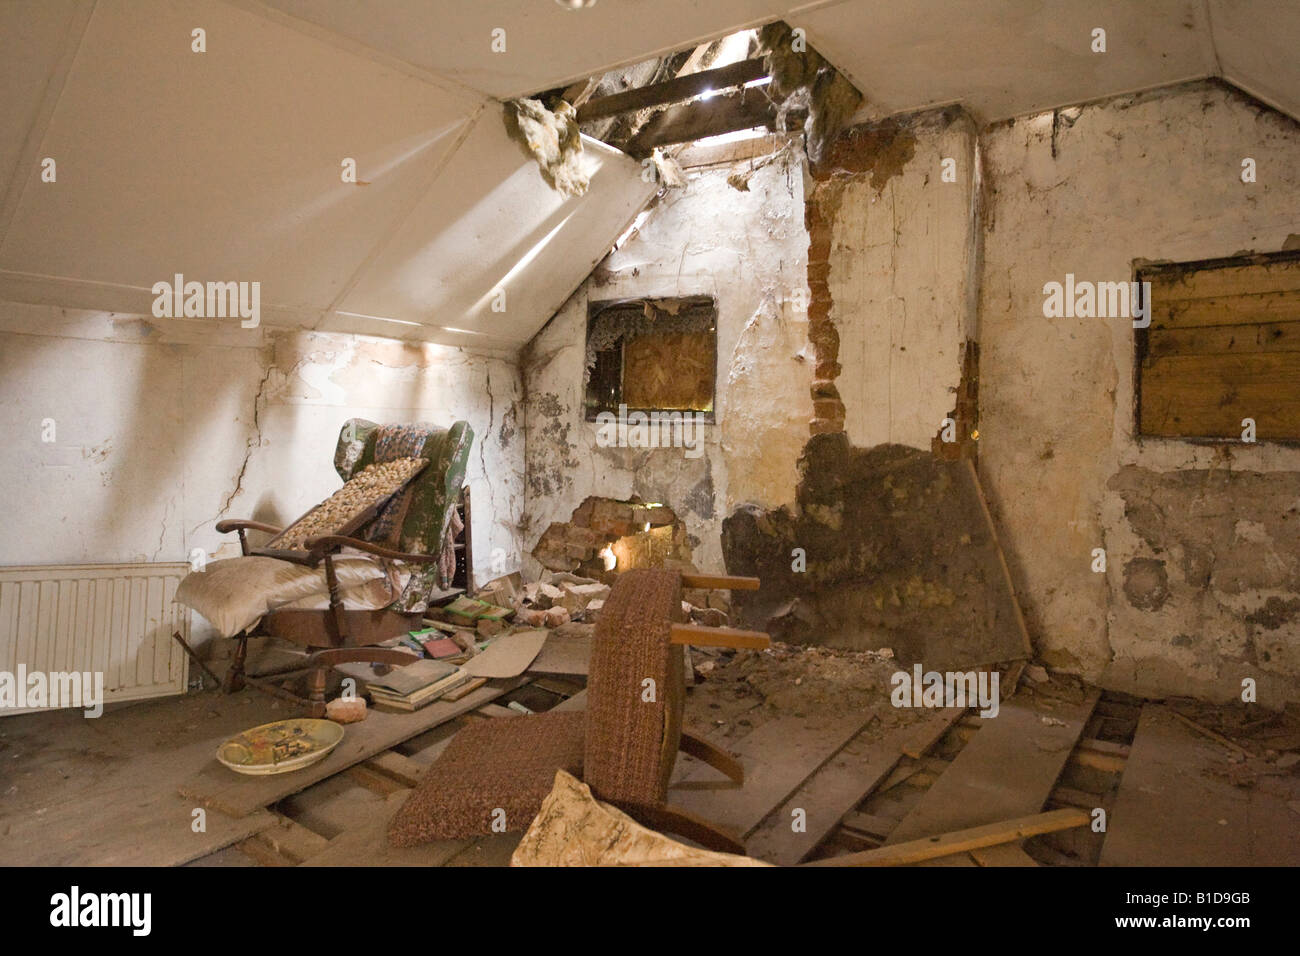 Sensational Inside Derelict House Cottage Stock Photo 18117915 Alamy Interior Design Ideas Oteneahmetsinanyavuzinfo